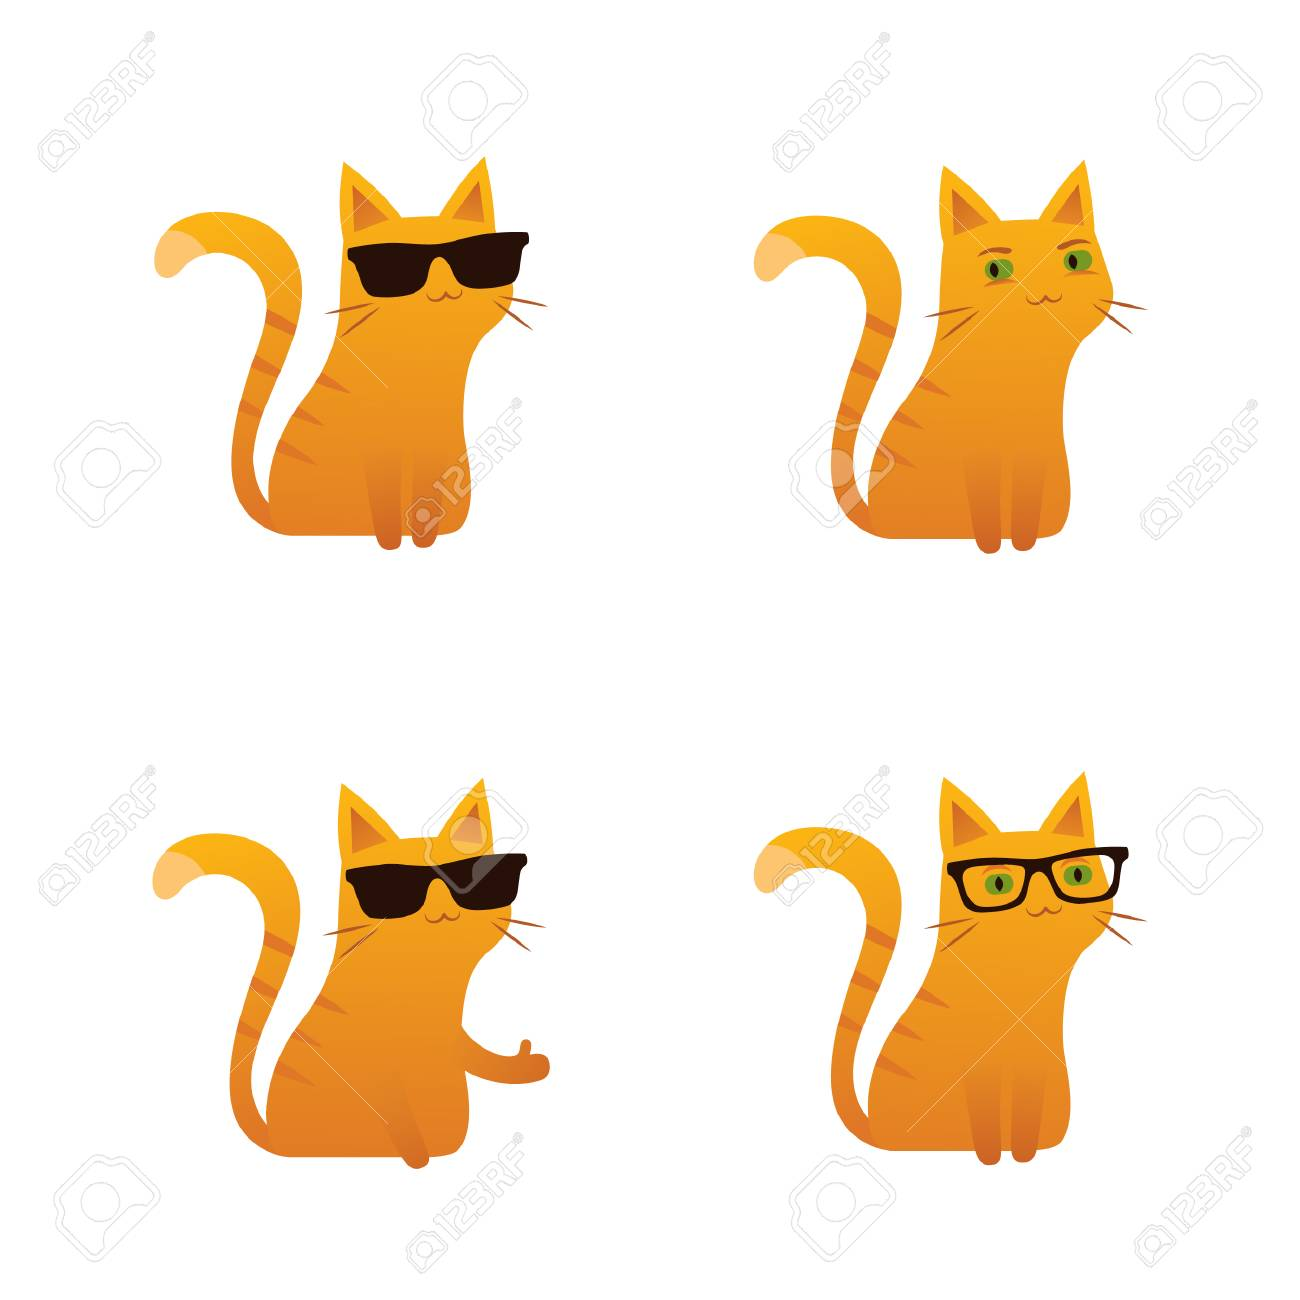 Cute red ginger cat vector illustration sunglasses thumbs up.